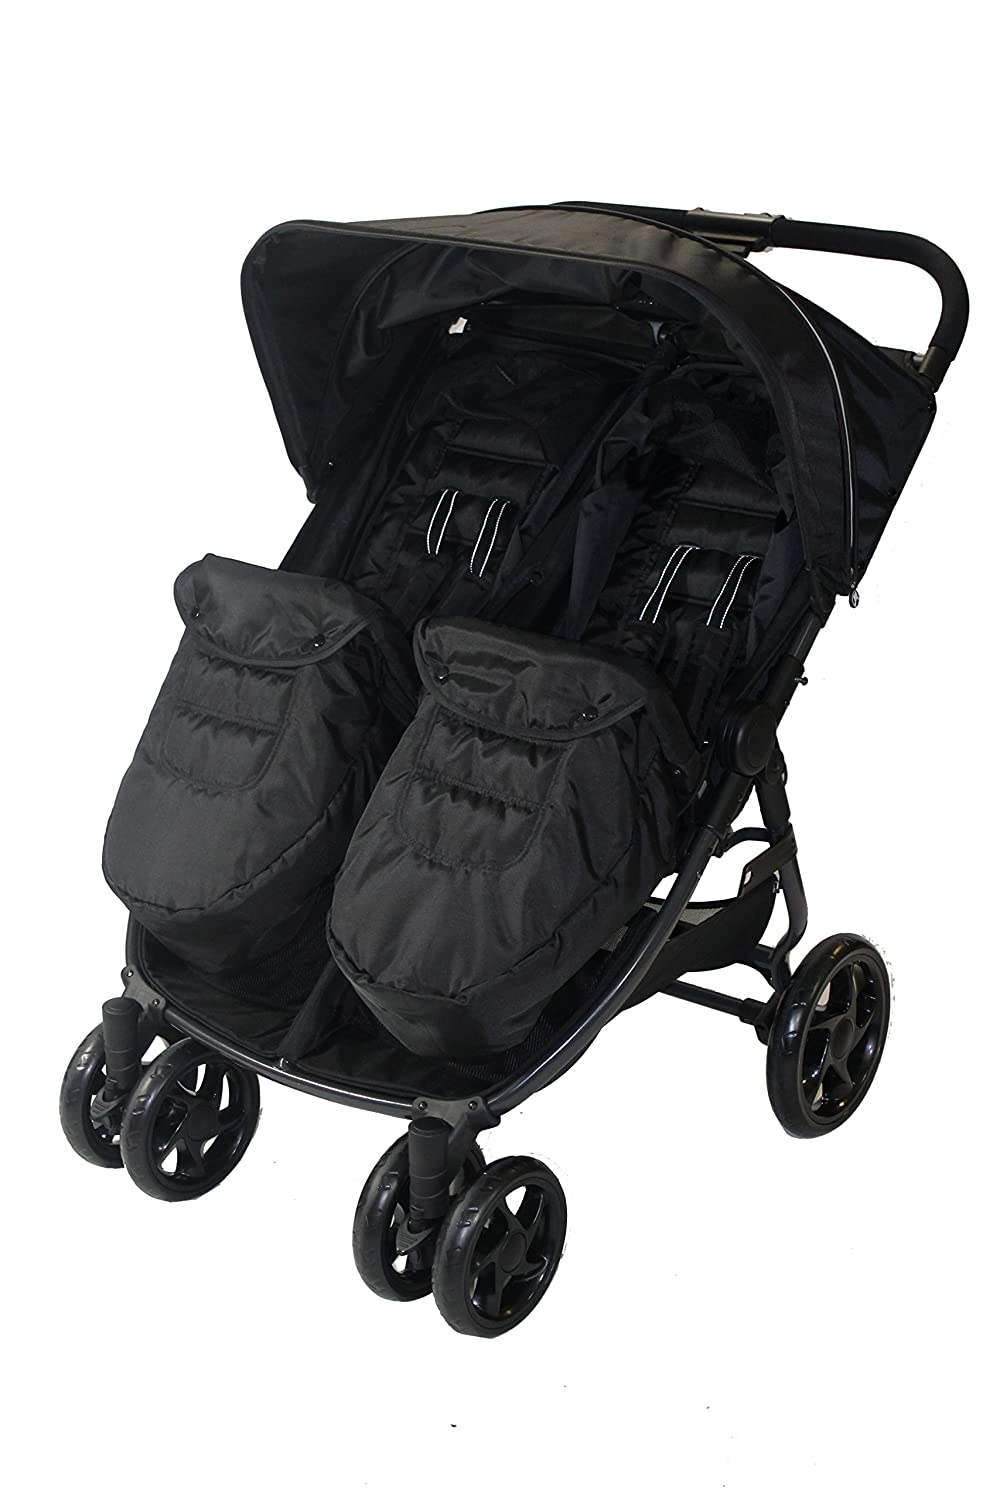 RedKite Push Me Black Frame Twini Twin Jogger Pushchair - New Colour And New Model 2017 Design